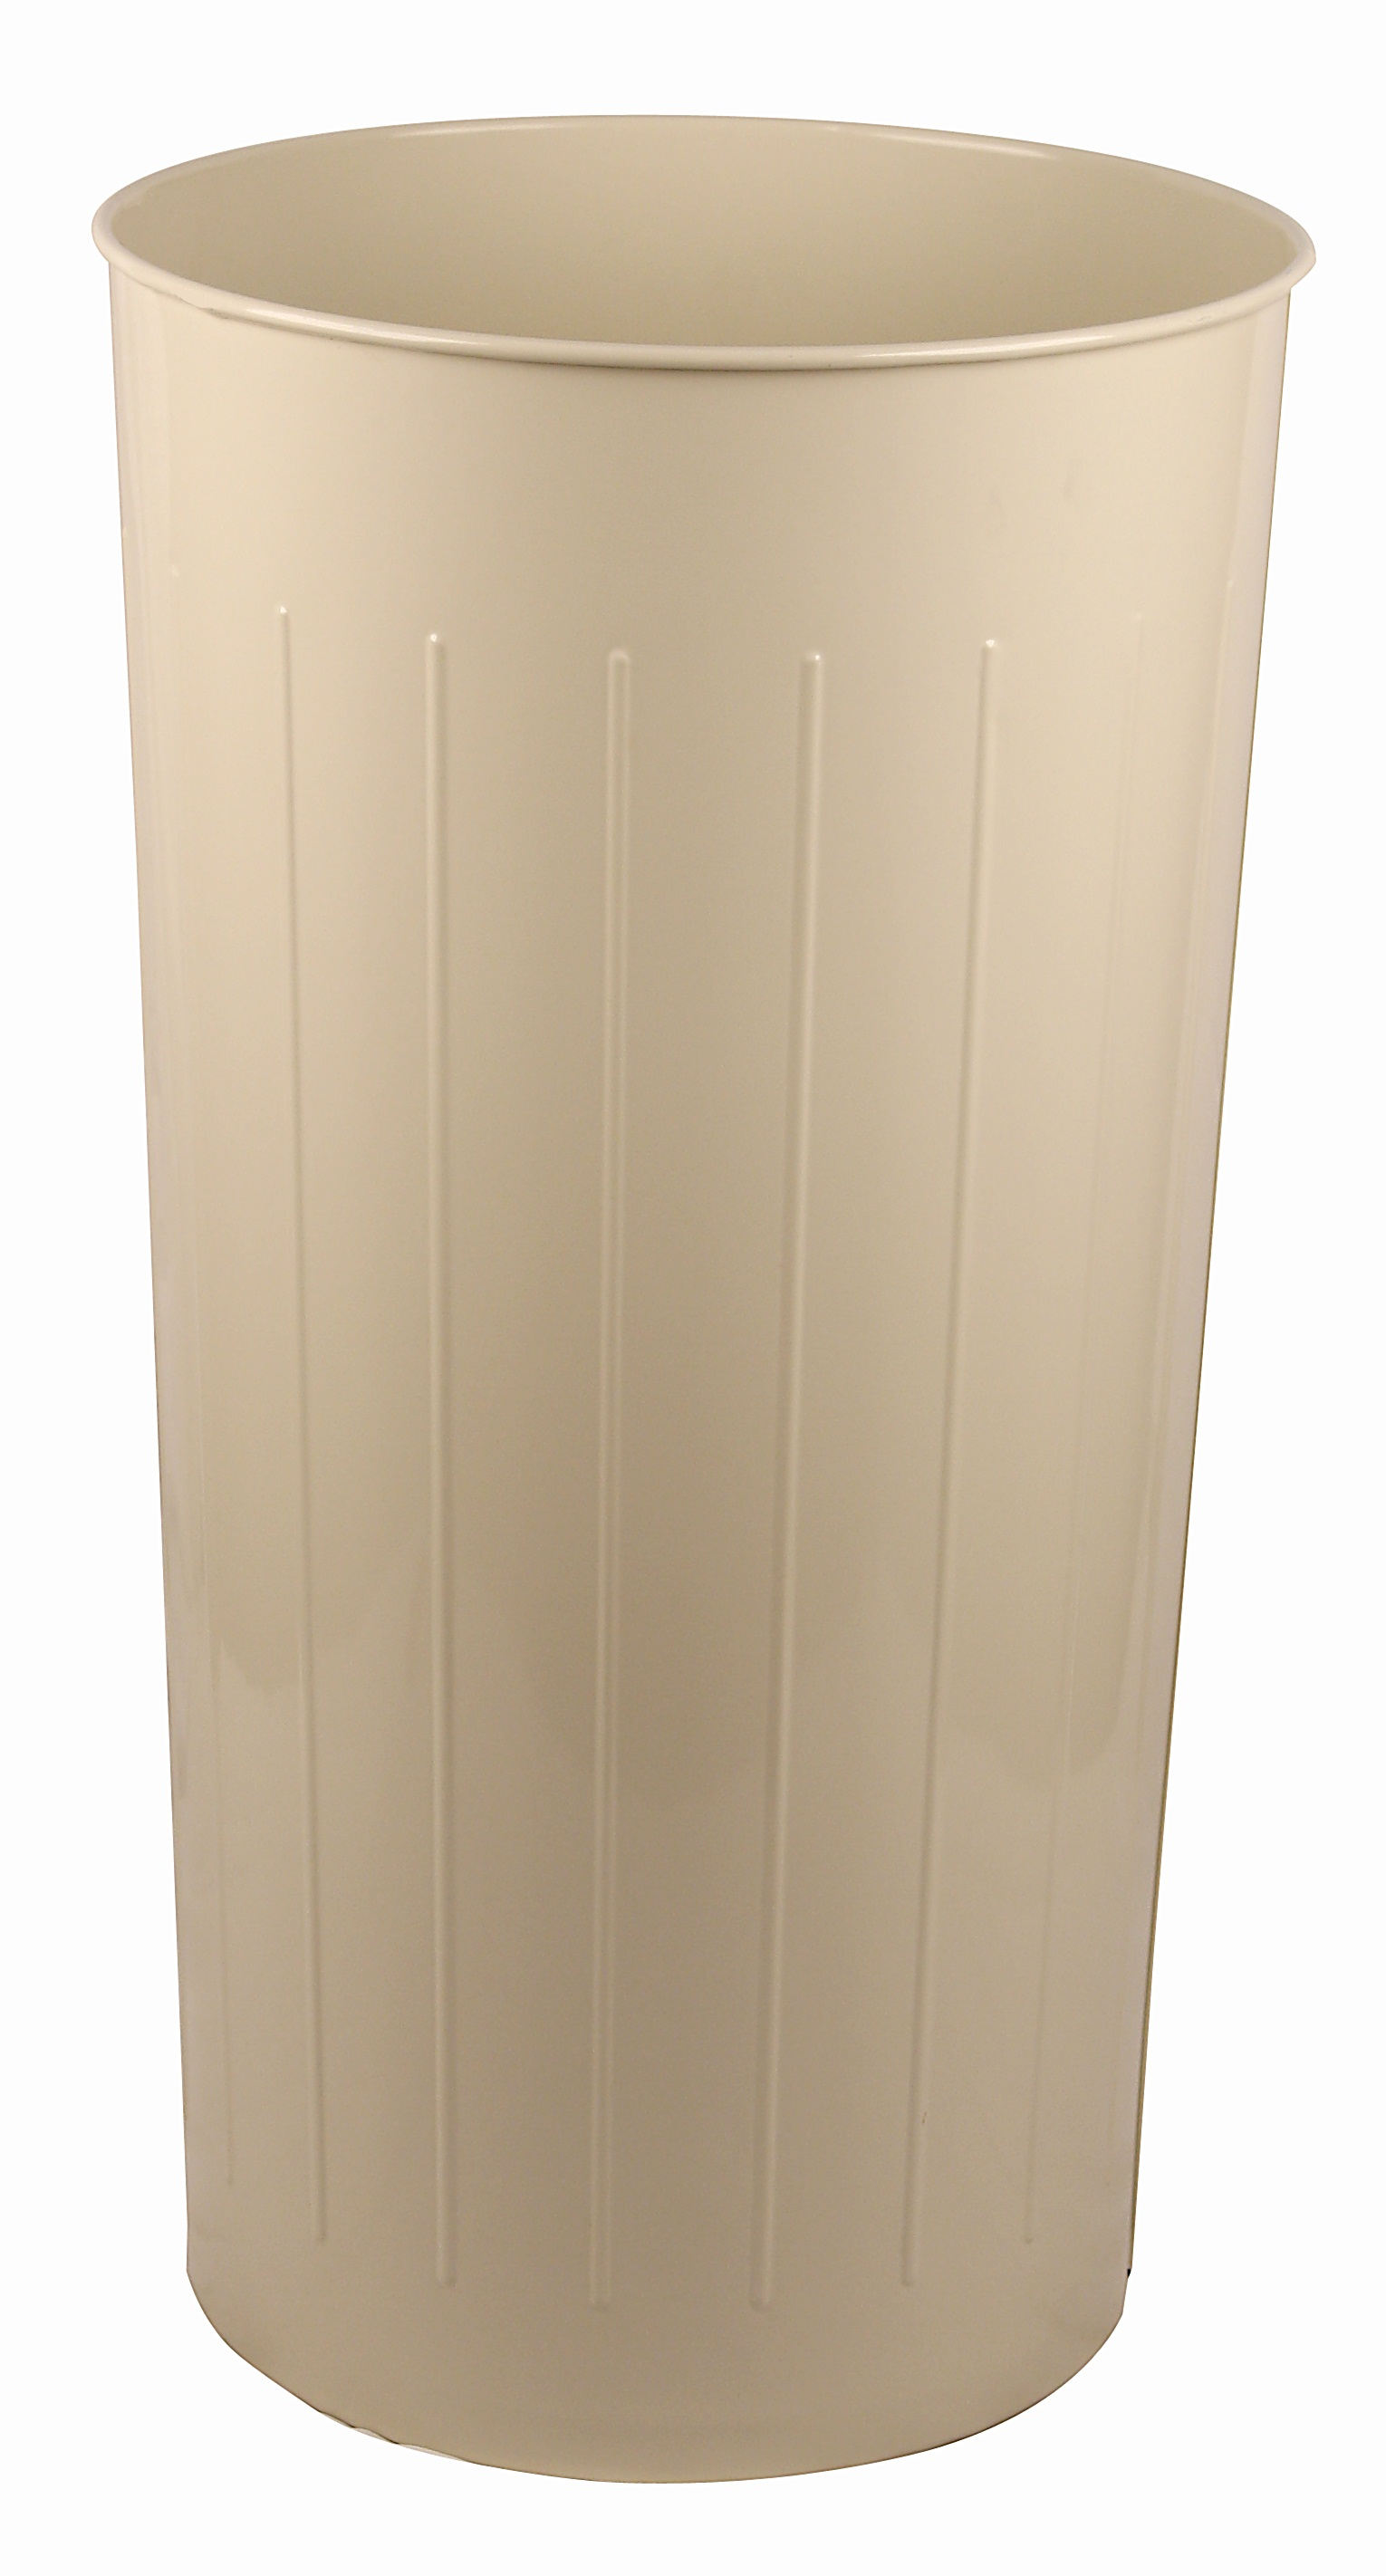 Tall Round Wastebasket, Almond